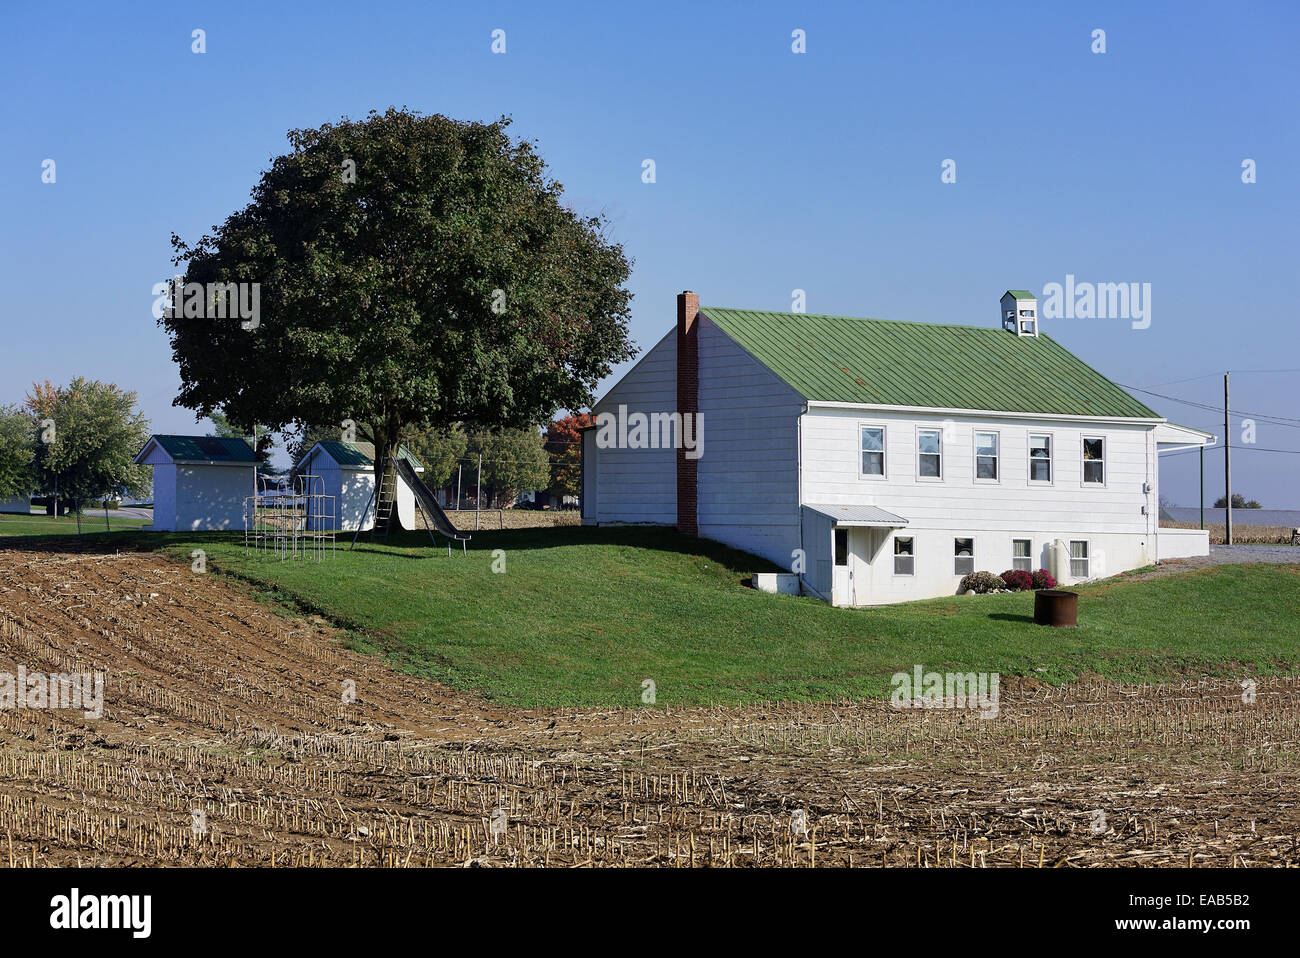 Amish one room school house, Ephrata, Lancaster County, Pennsylvania, USA - Stock Image